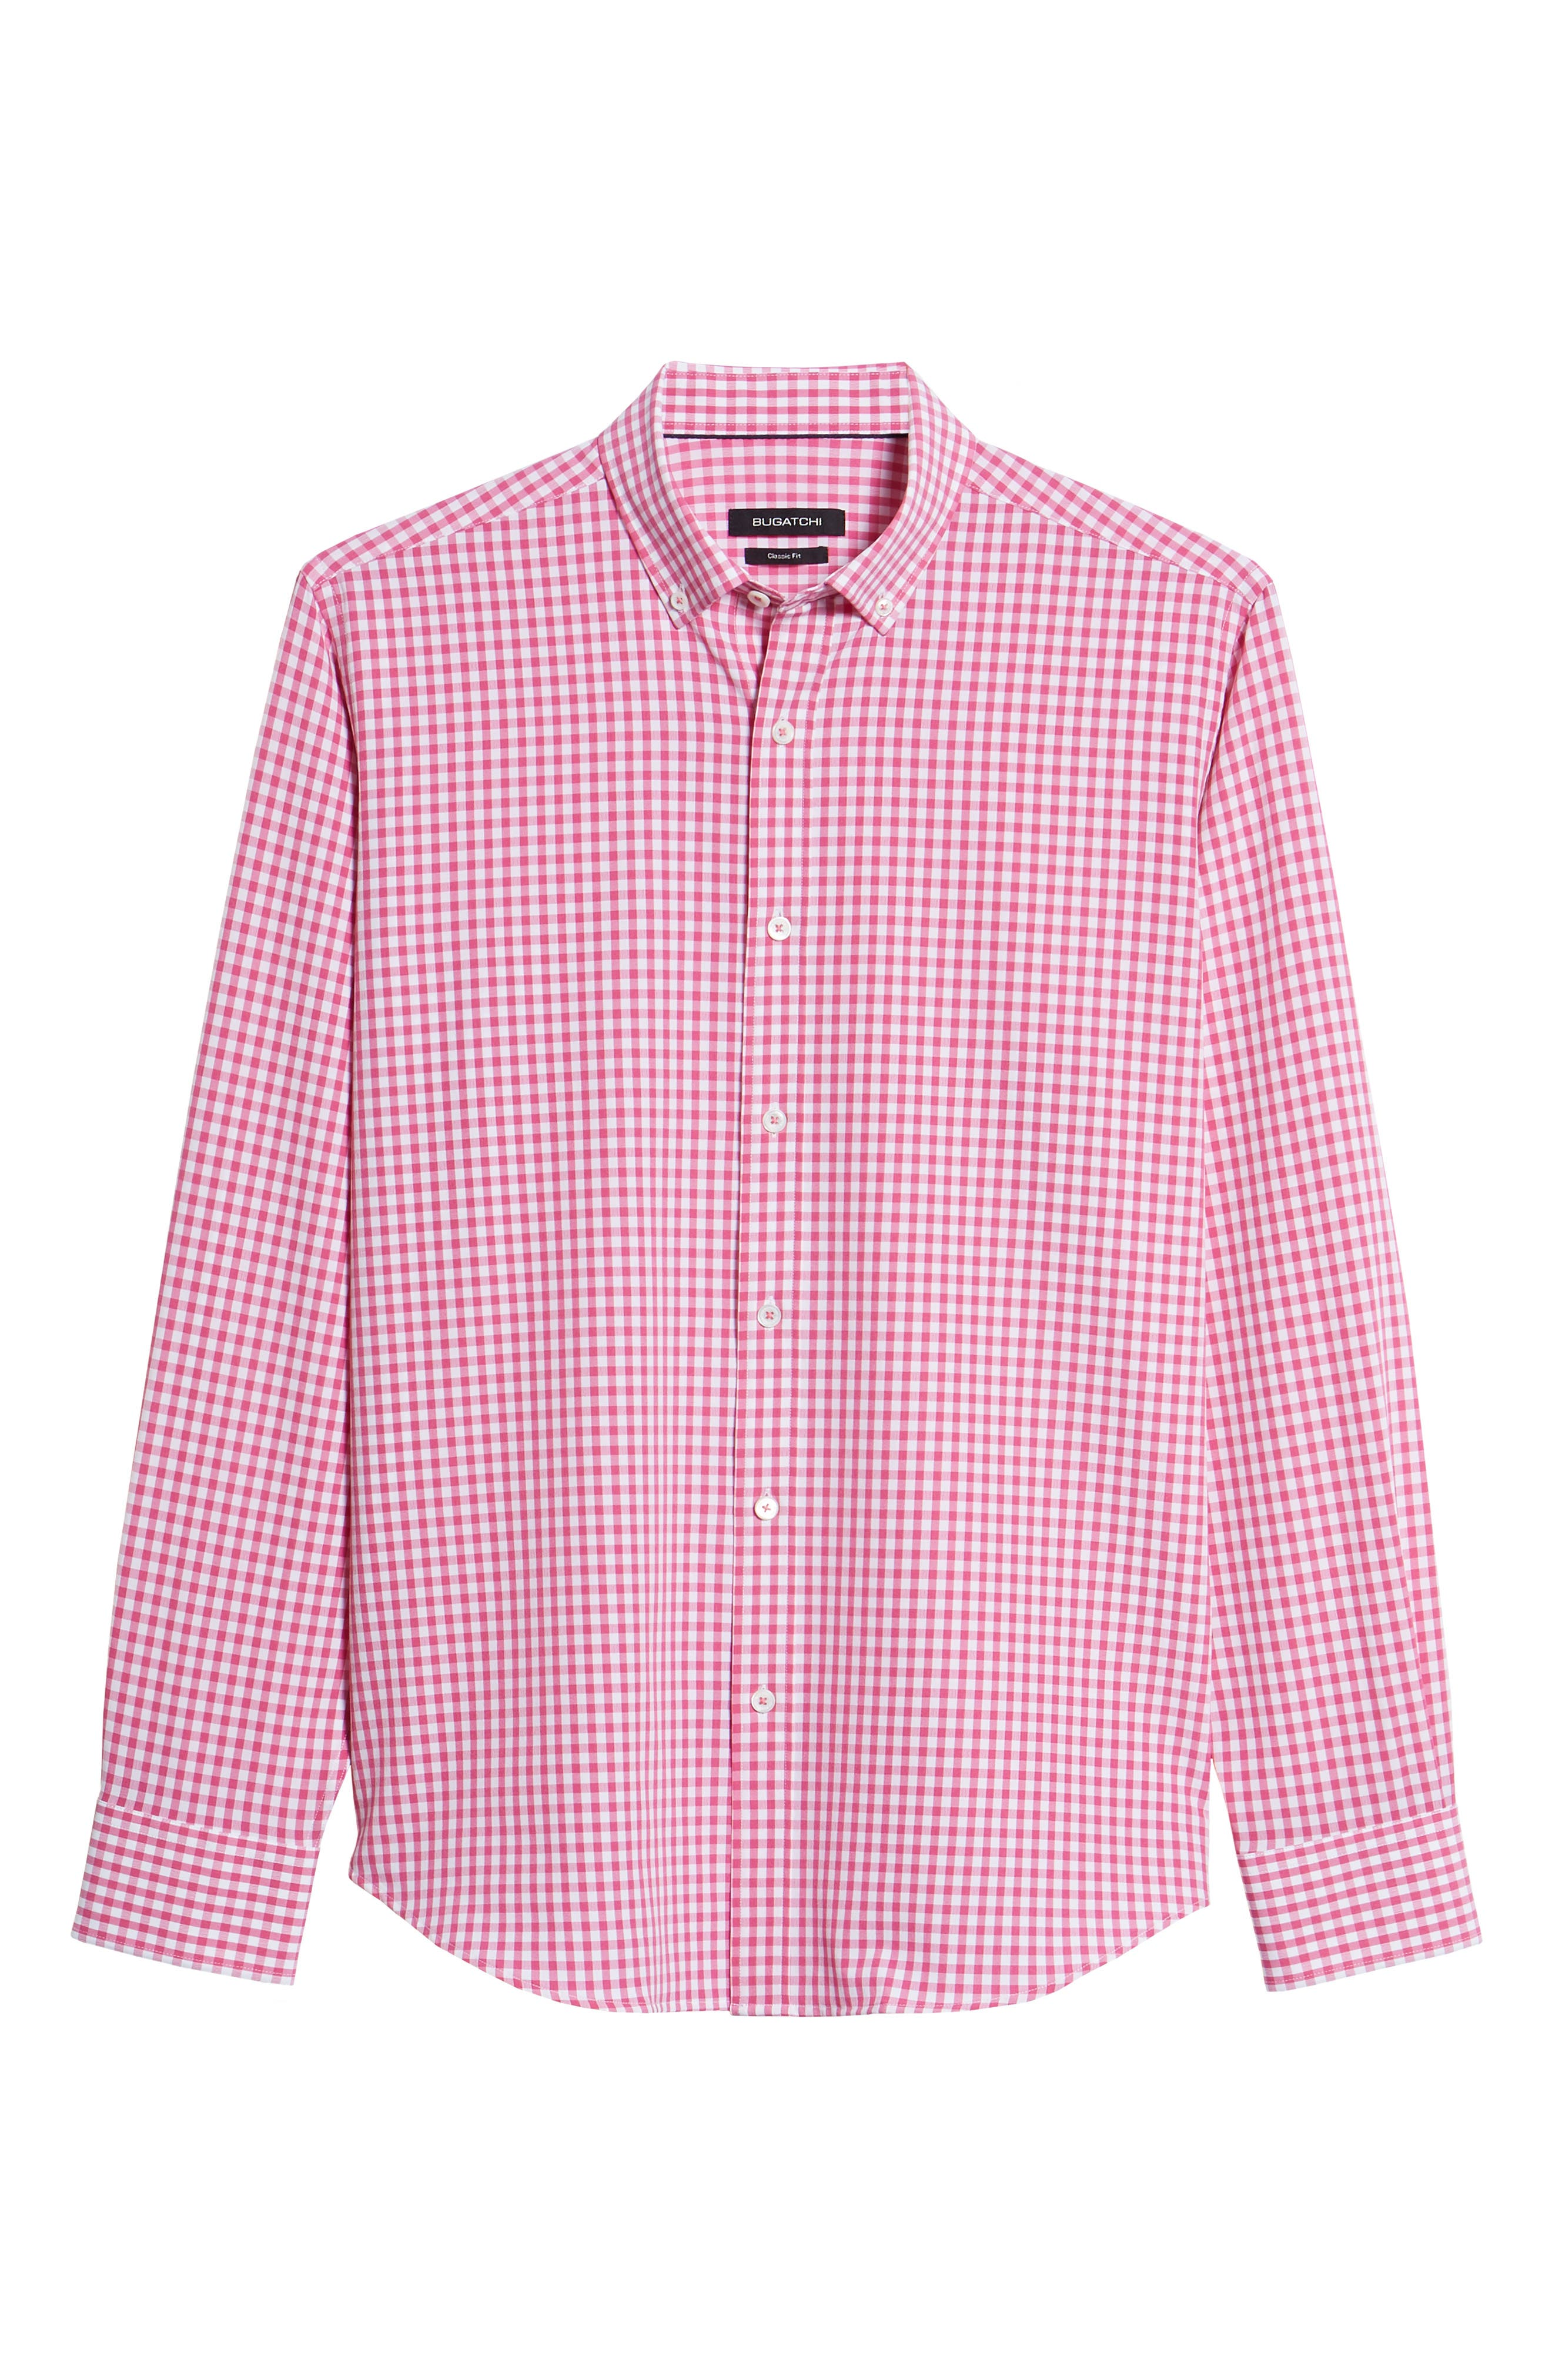 Classic Fit Gingham Performance Sport Shirt,                             Alternate thumbnail 6, color,                             PINK